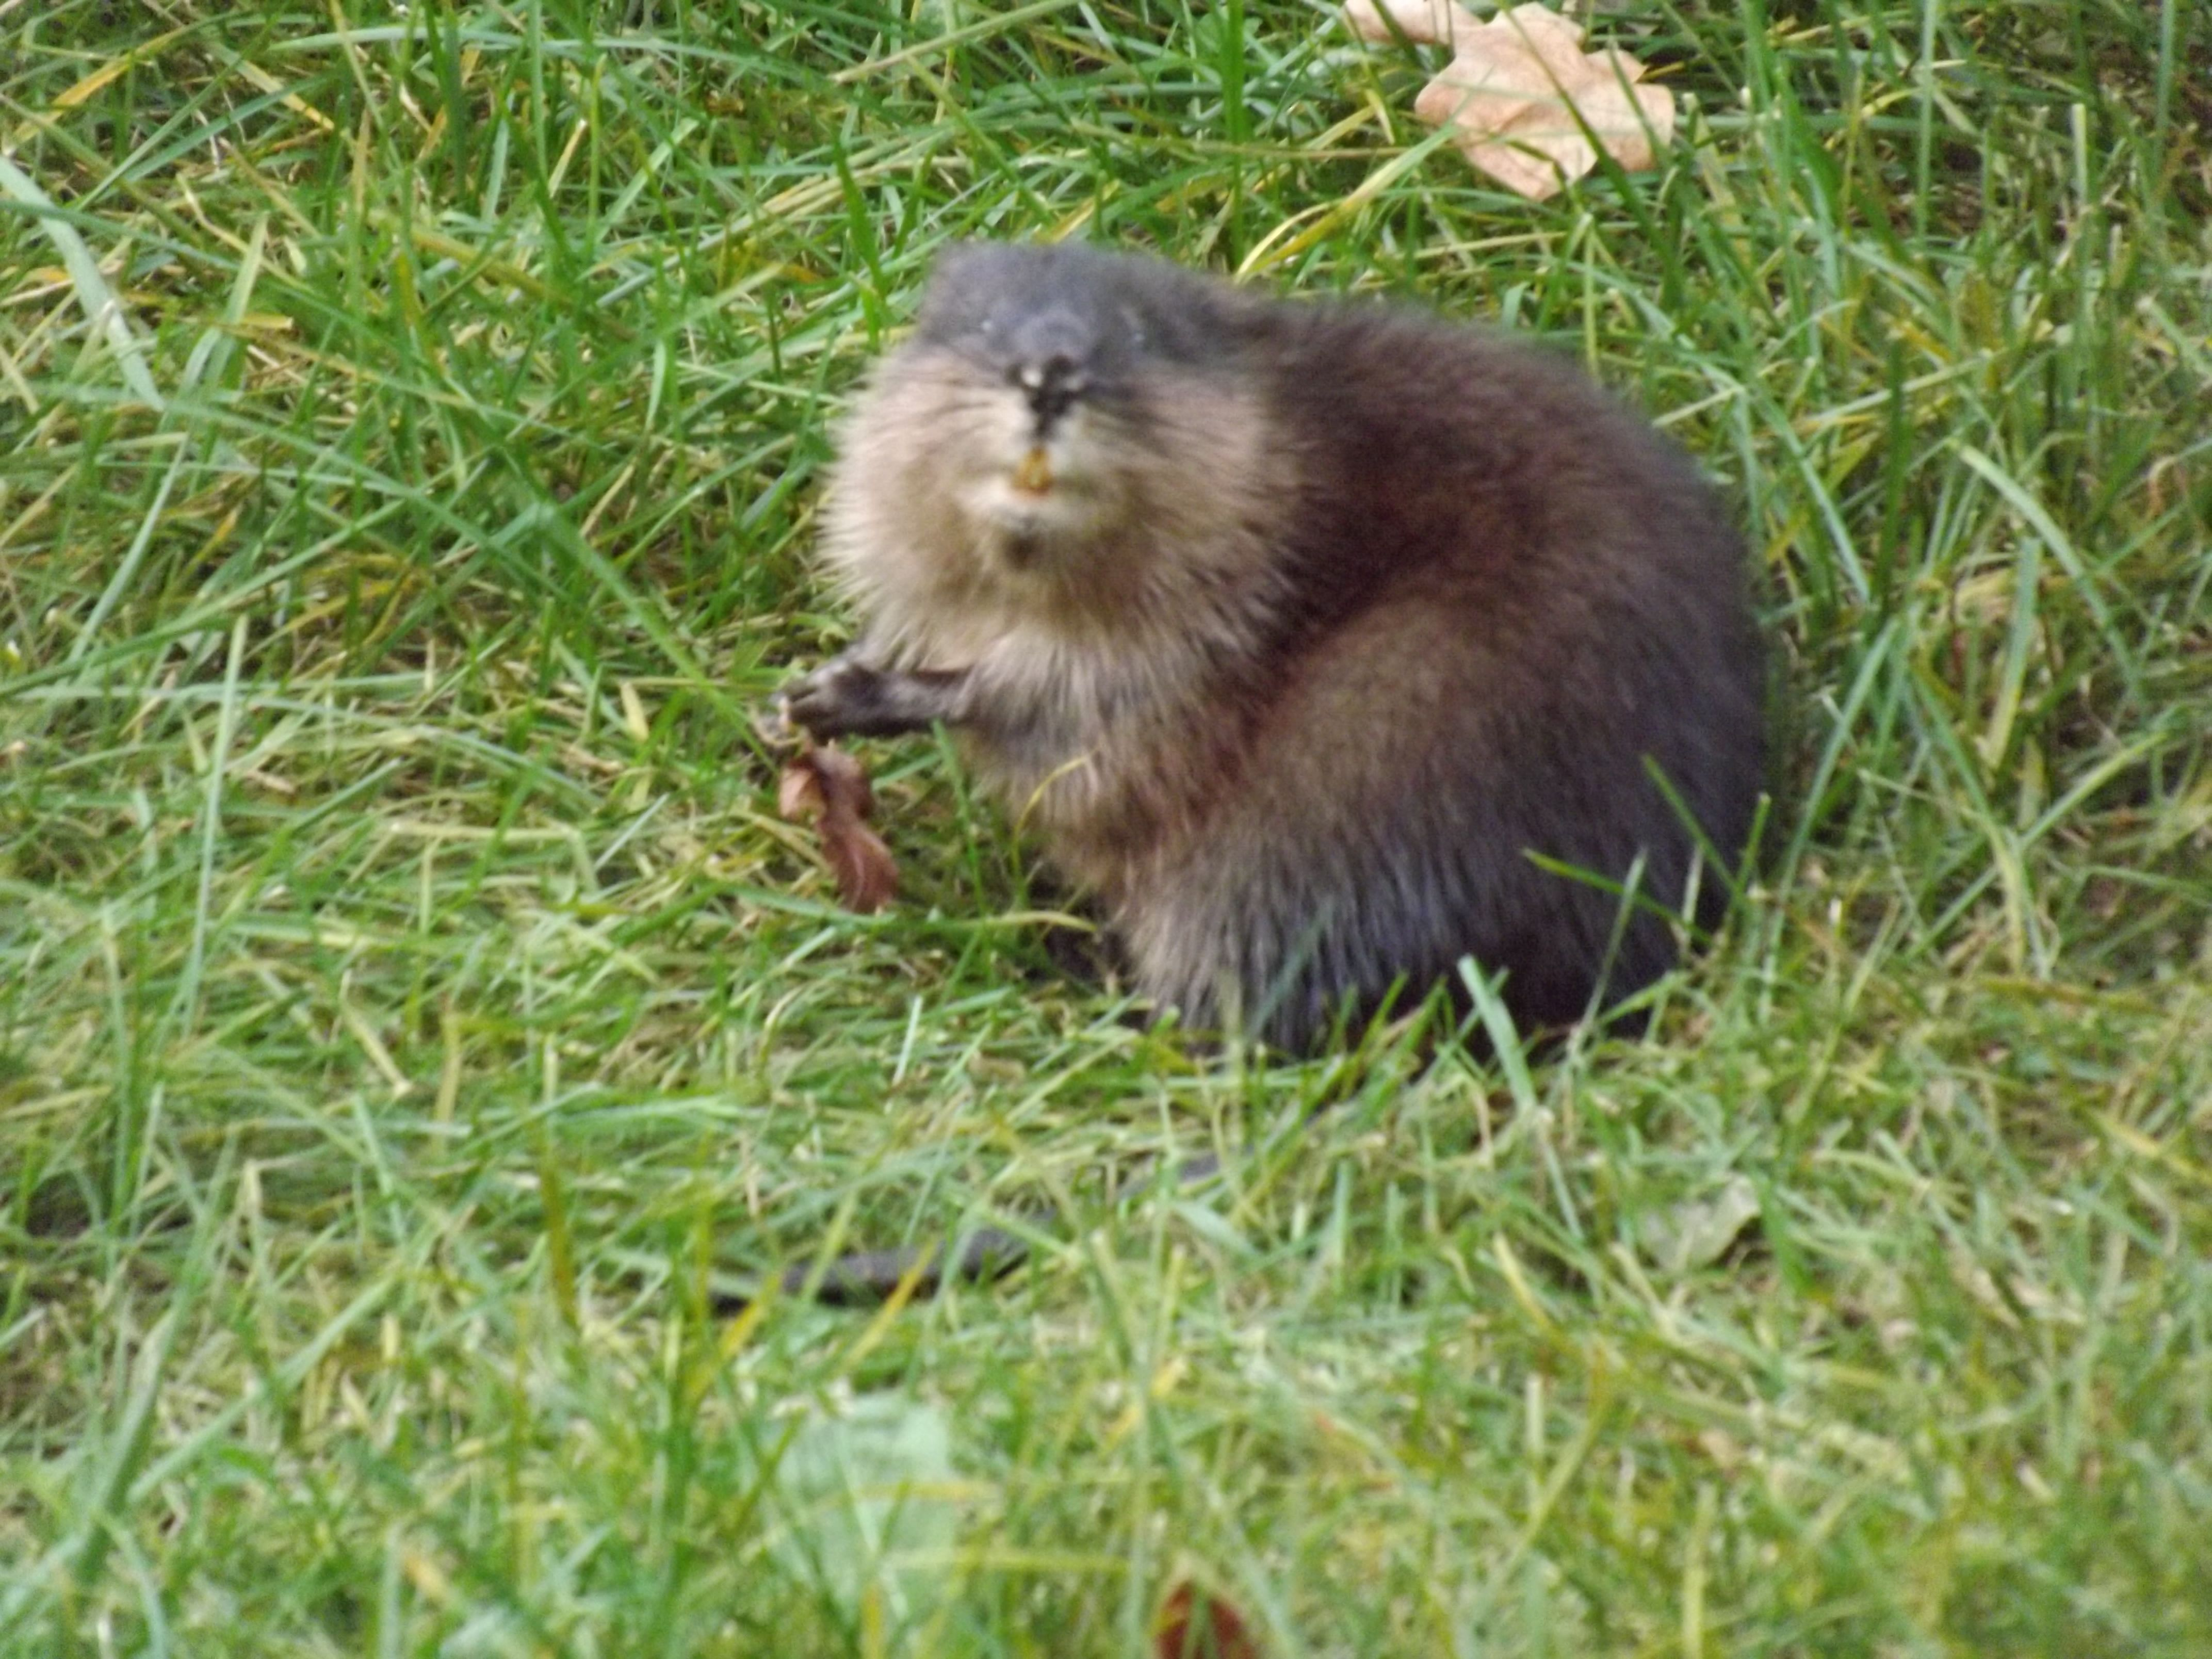 this little muskrat stopped to pose for the camera while munching